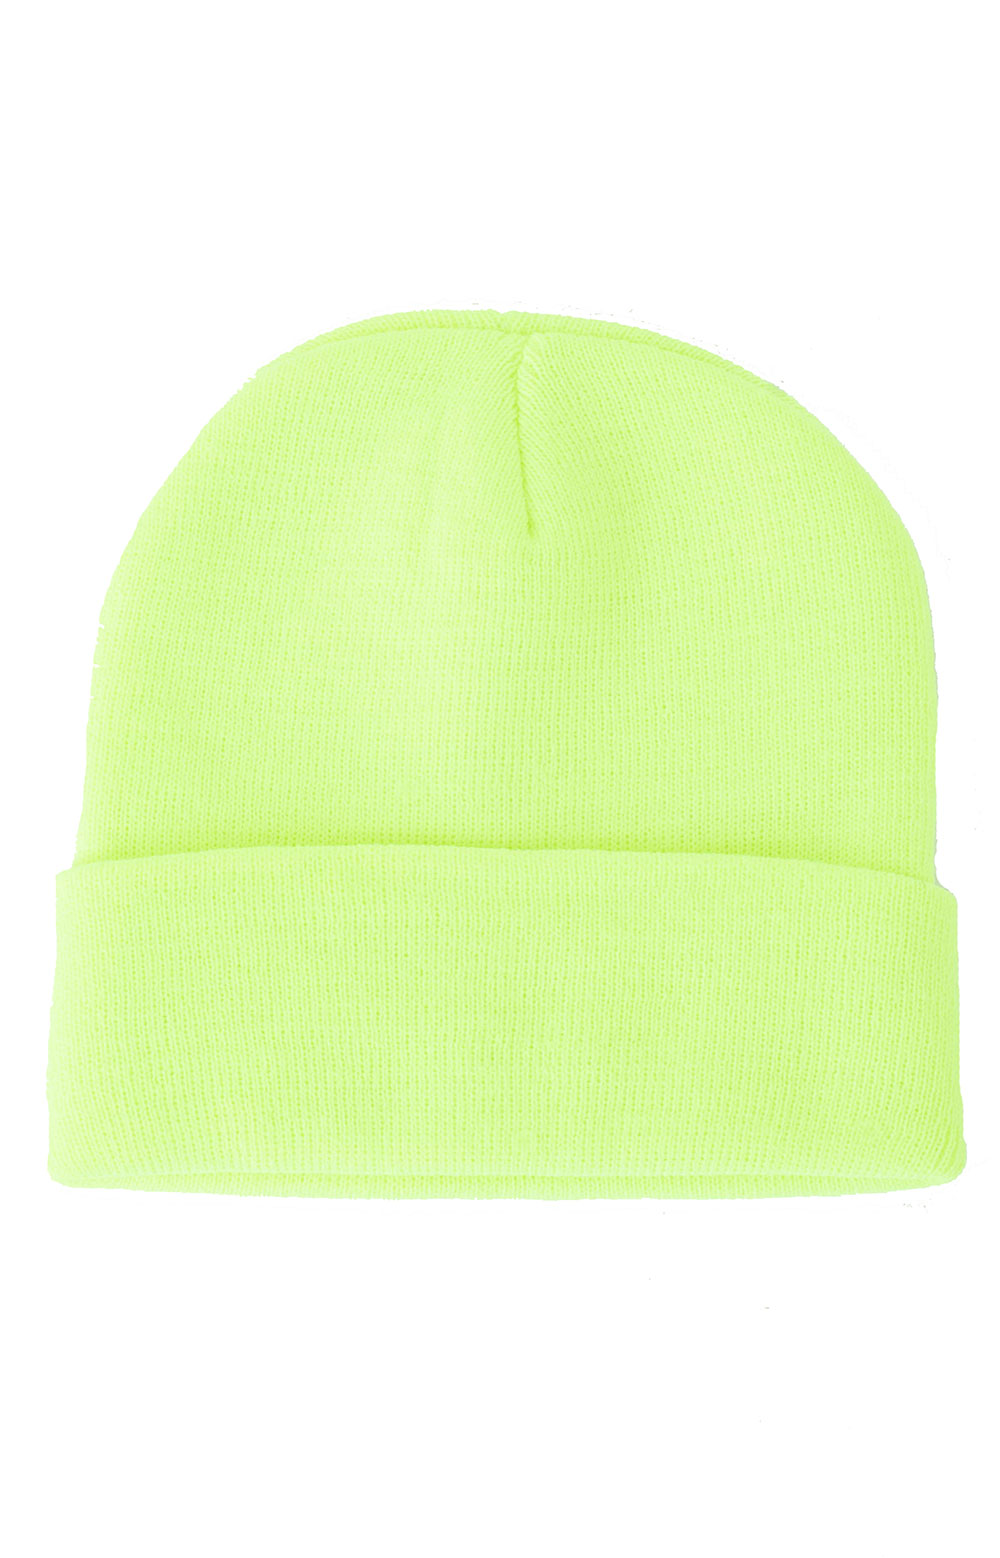 (5785) Rothco Deluxe Fine Knit Watch Cap - Safety Green